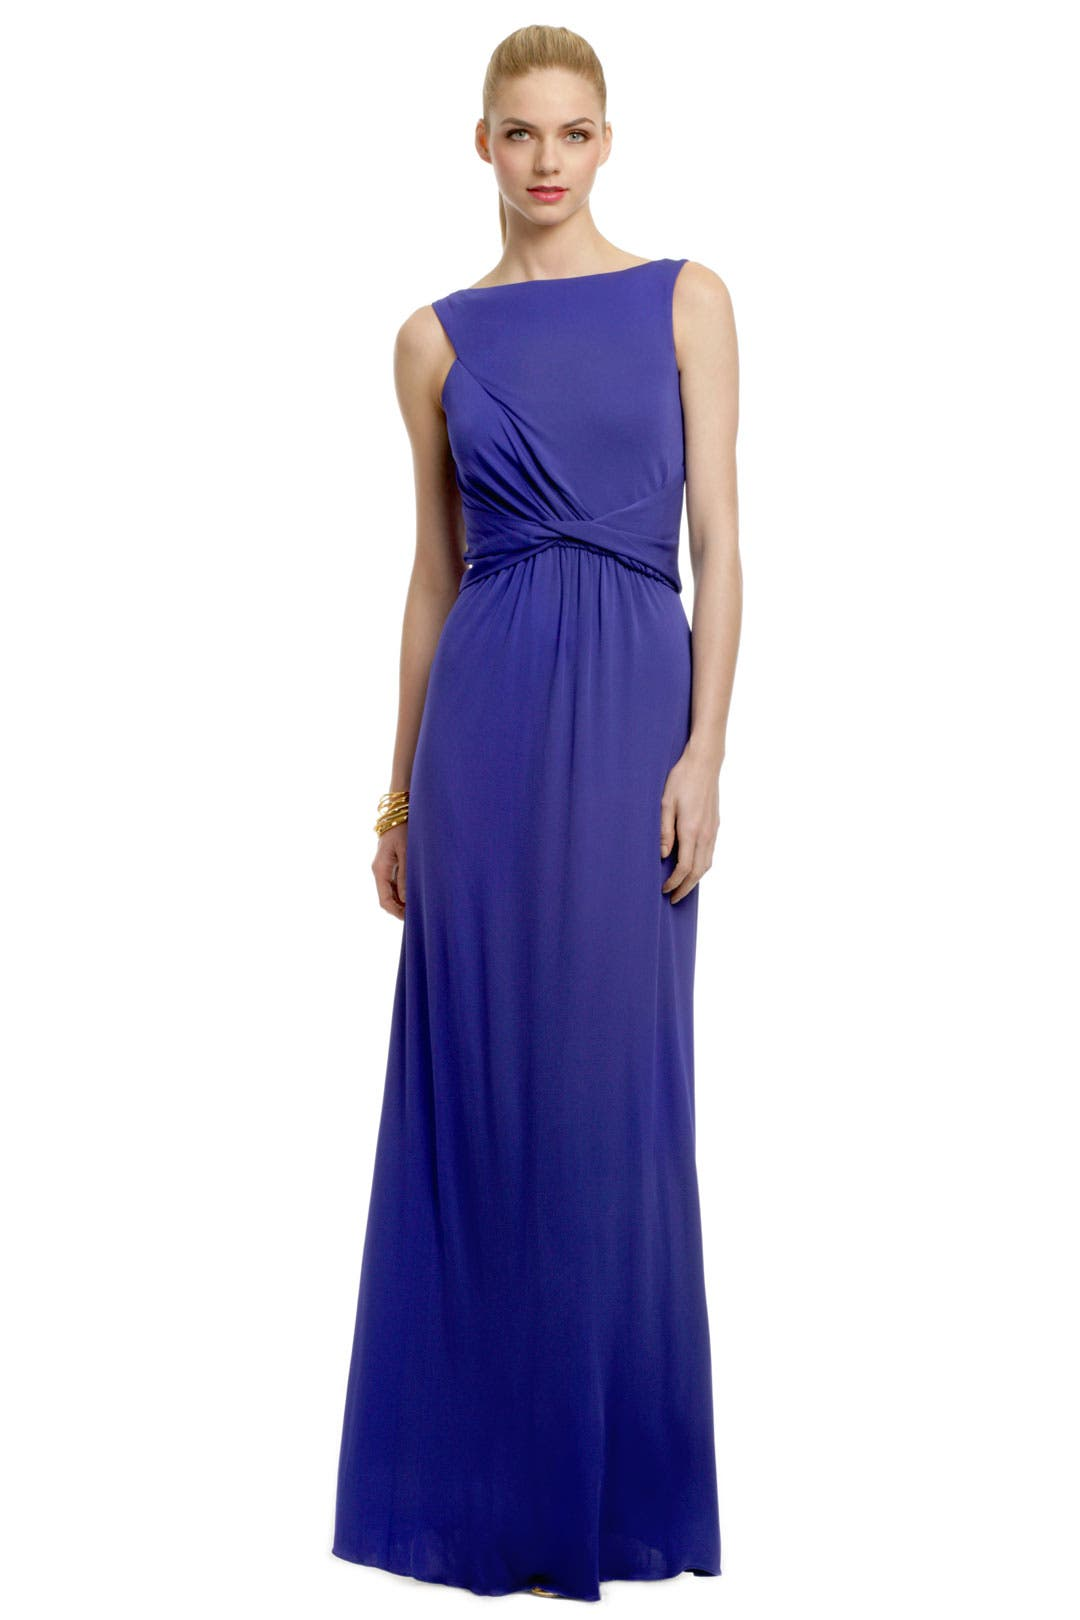 Forever Bonded Gown by Badgley Mischka